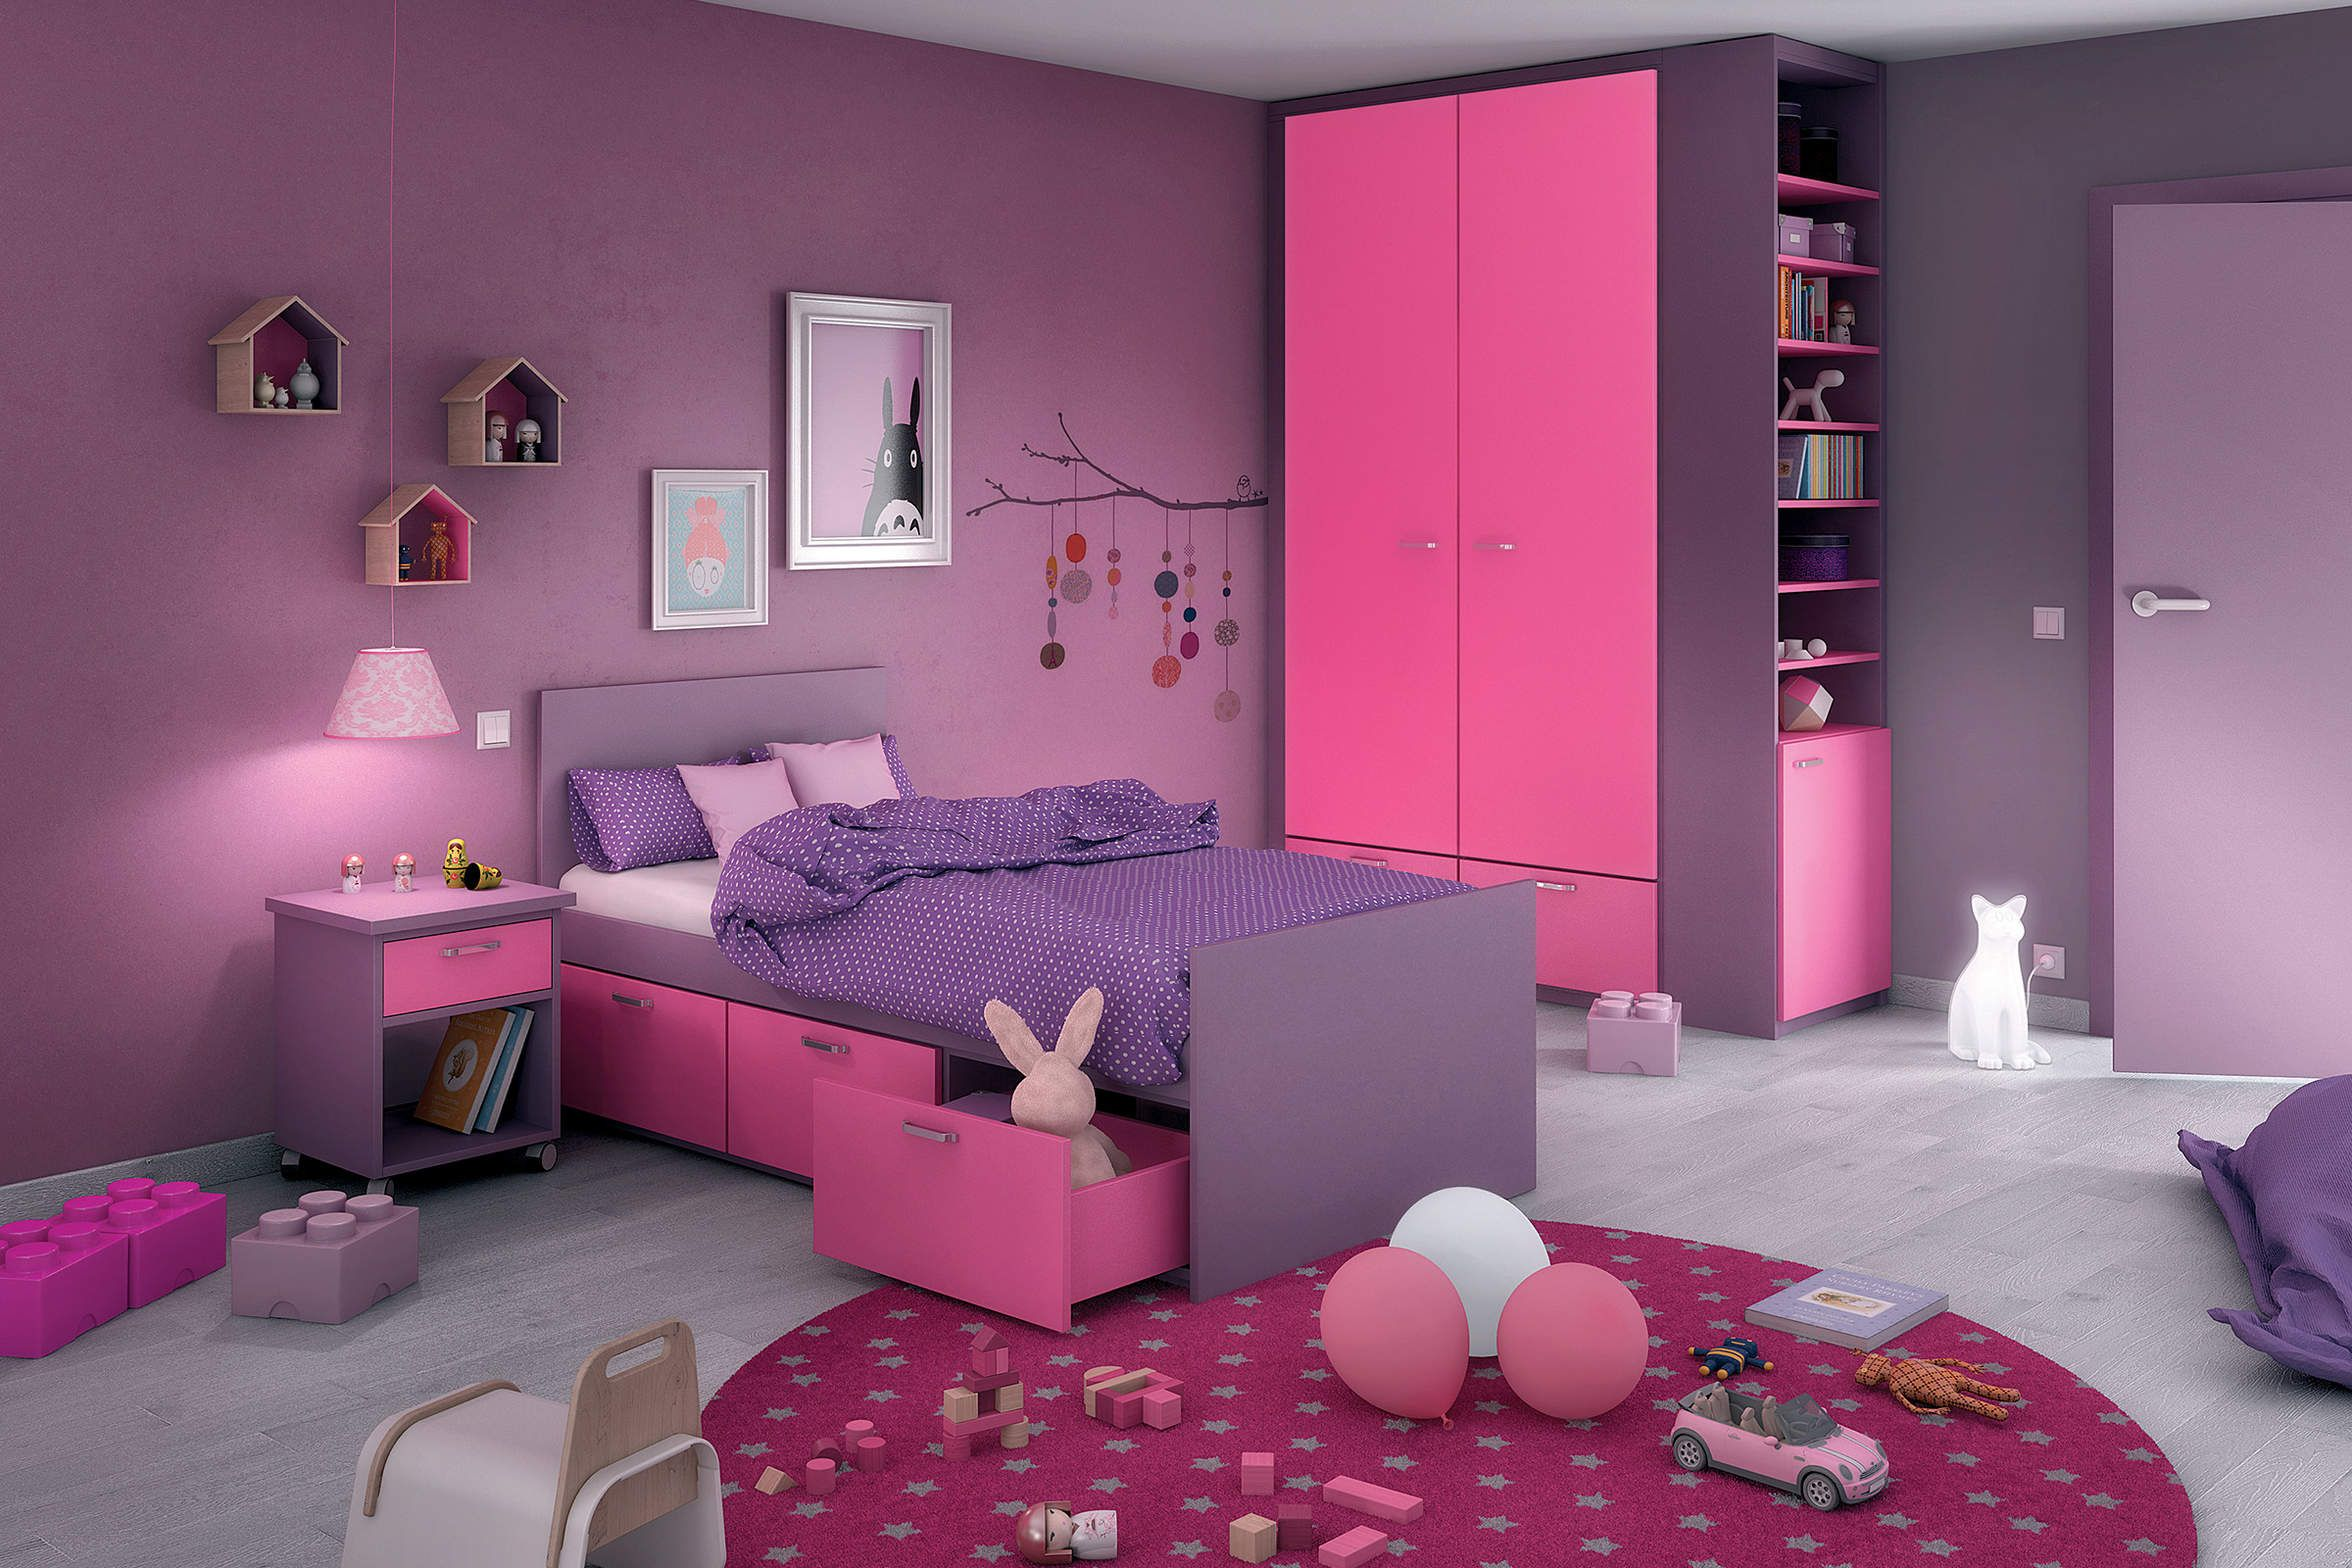 rangements chambre petite fille d co chambre pinterest. Black Bedroom Furniture Sets. Home Design Ideas